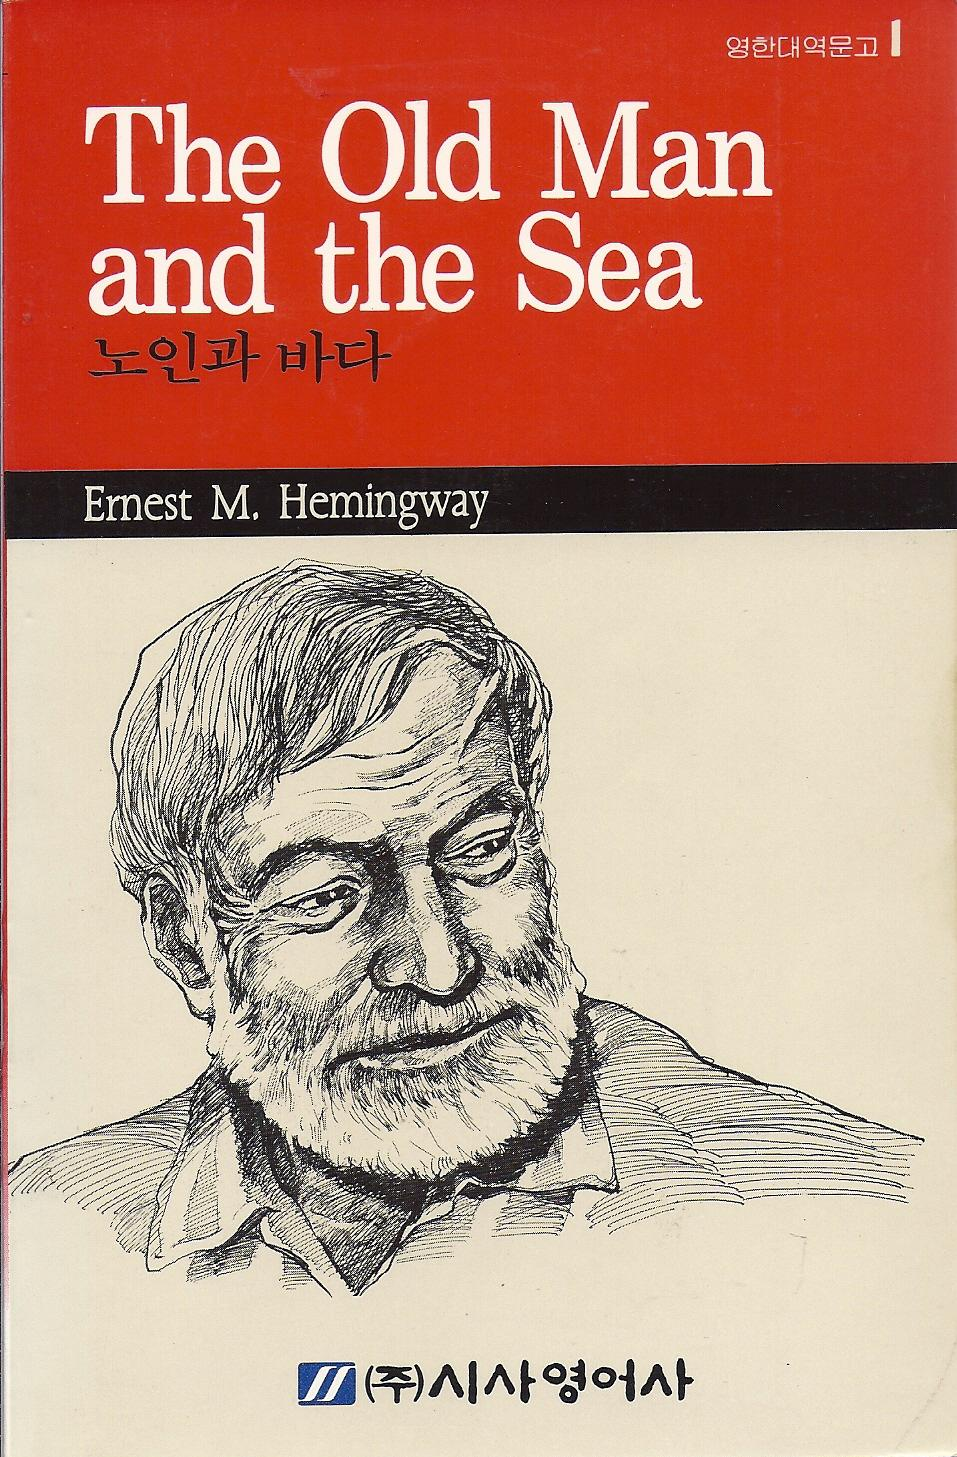 an analysis of the role of santiago in the old man and the sea by ernest hemingway